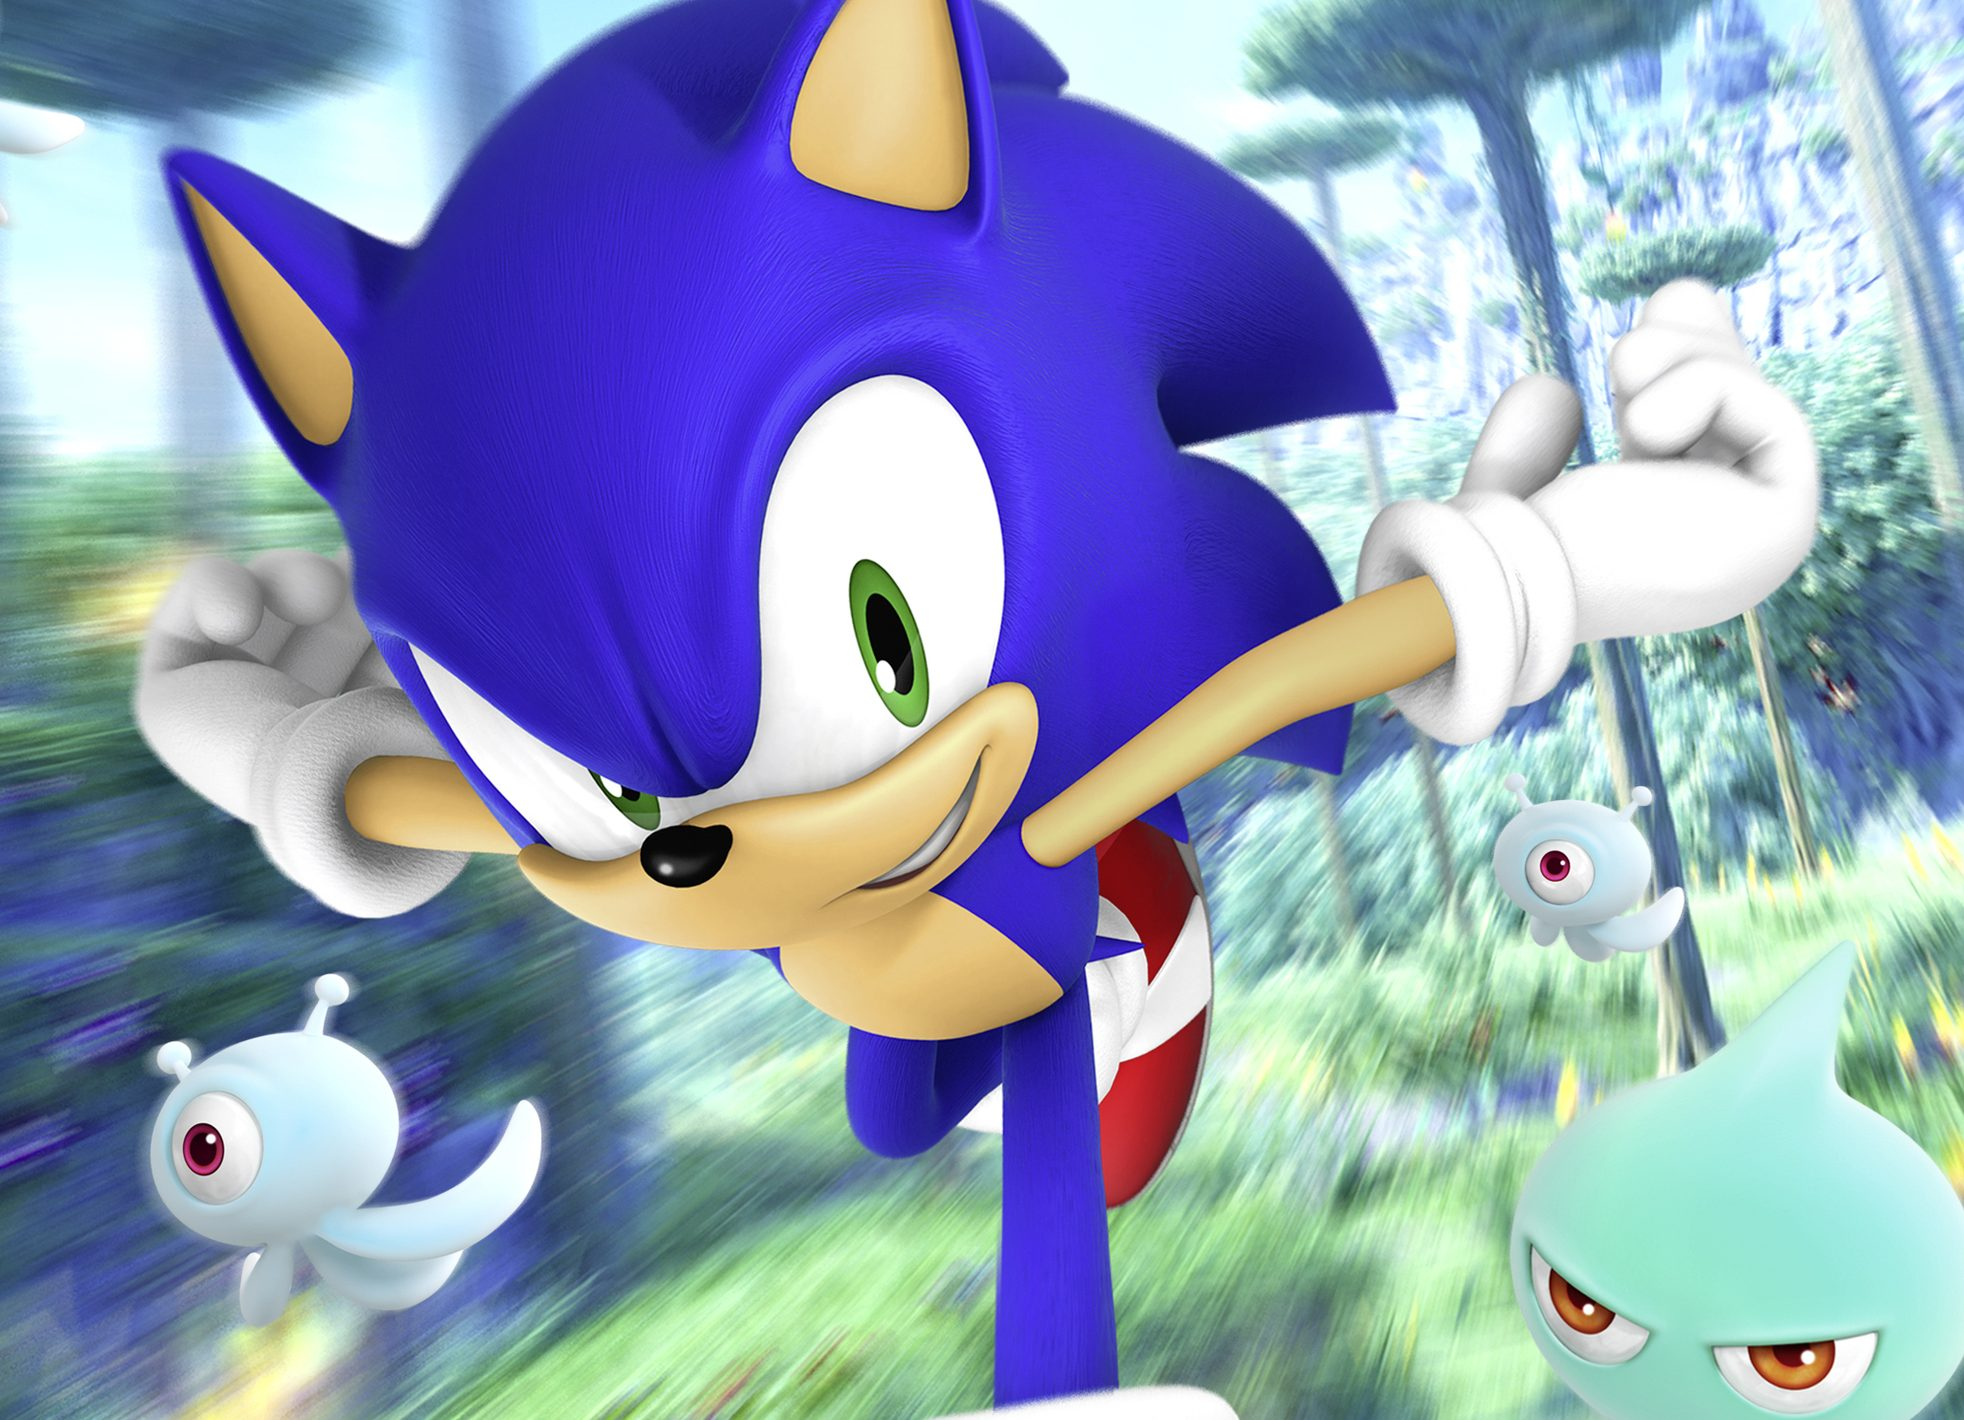 sonic the hedgehog running e1624528018828 Sega Planning A Sonic The Hedgehog Theme Park, Reports Suggest